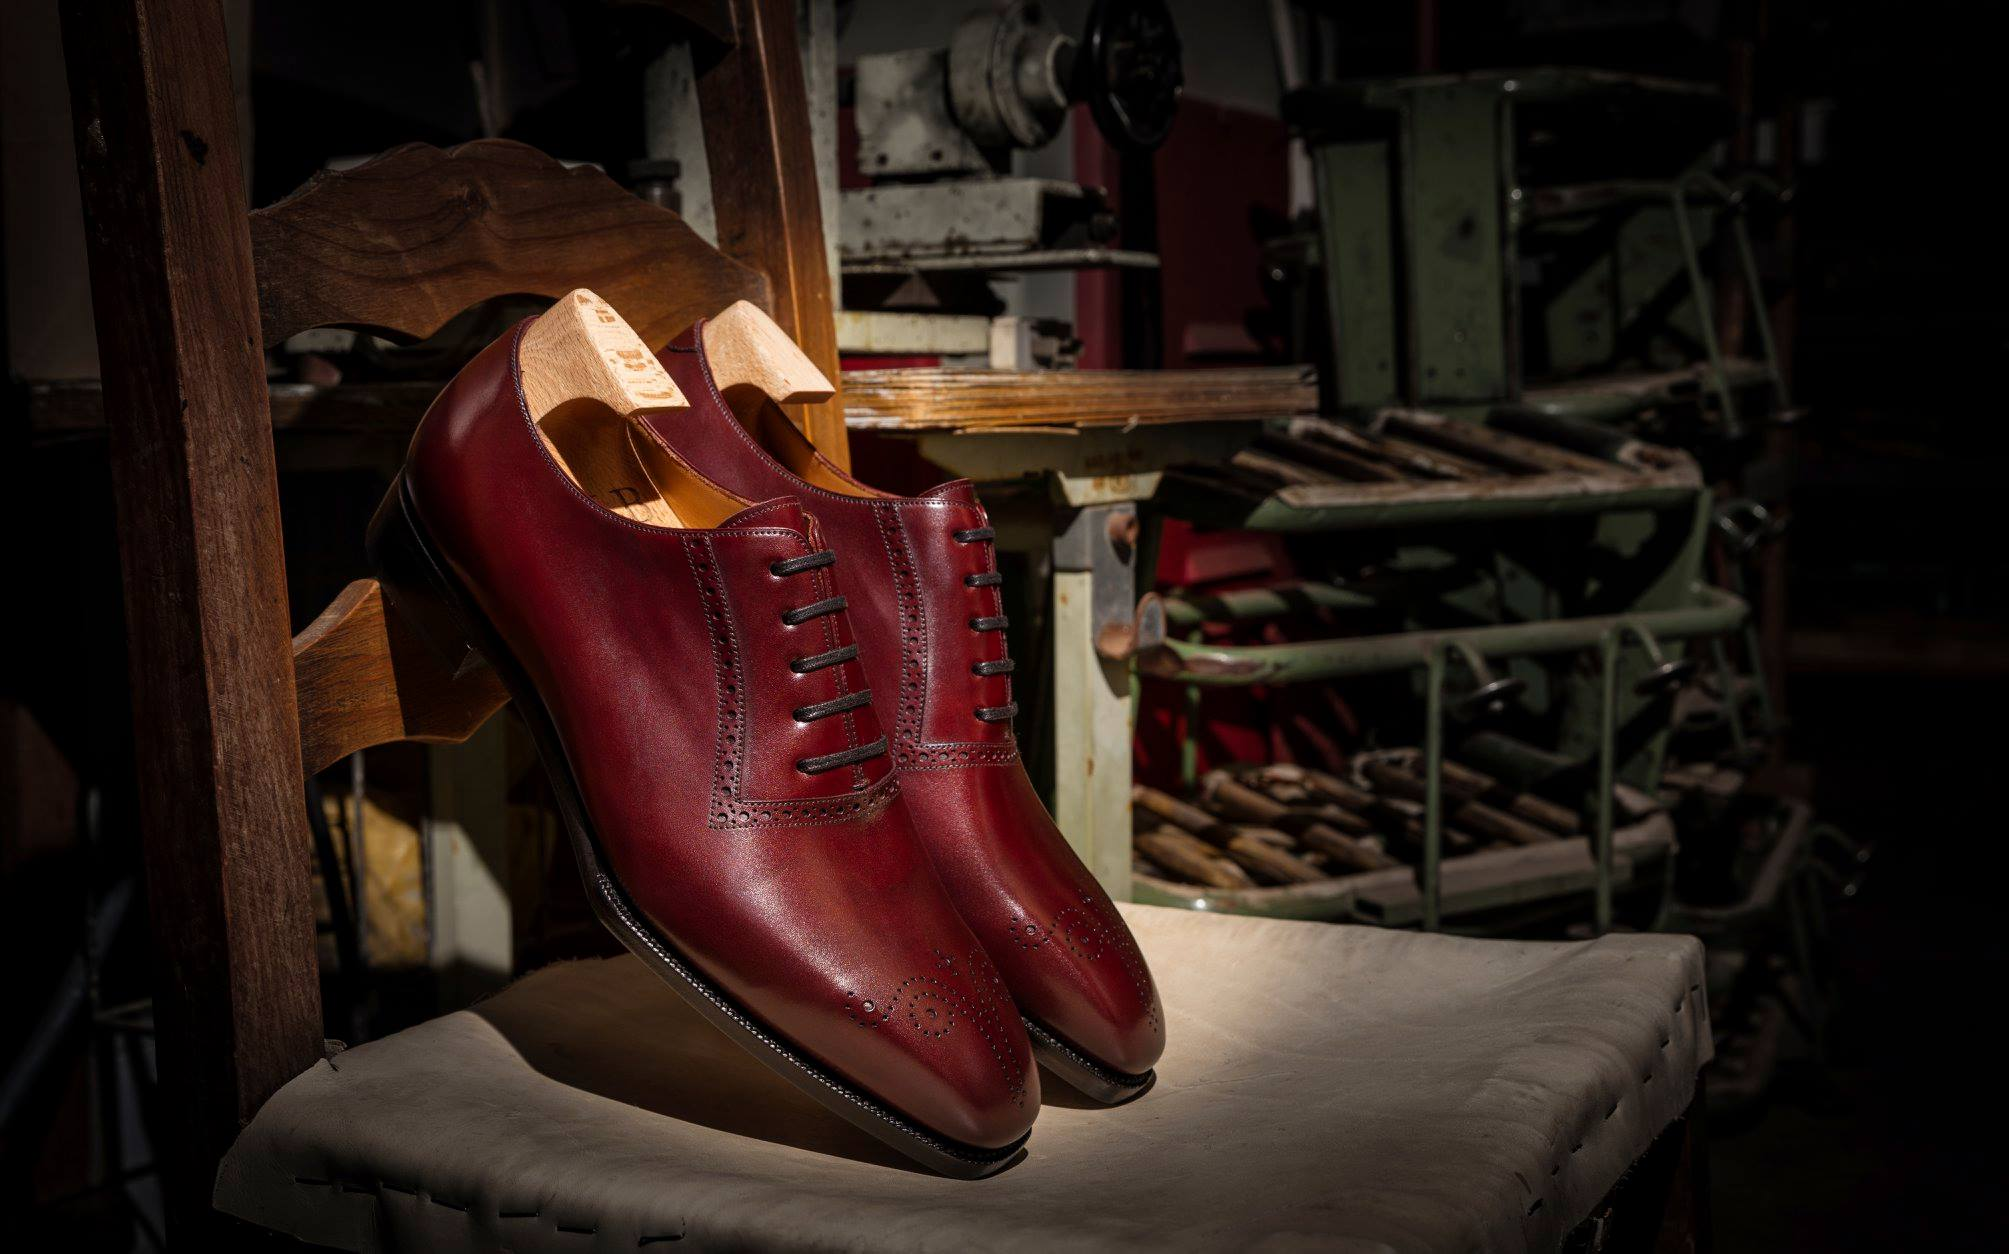 TLB Artista 107 - Goodyear Welted Shoes